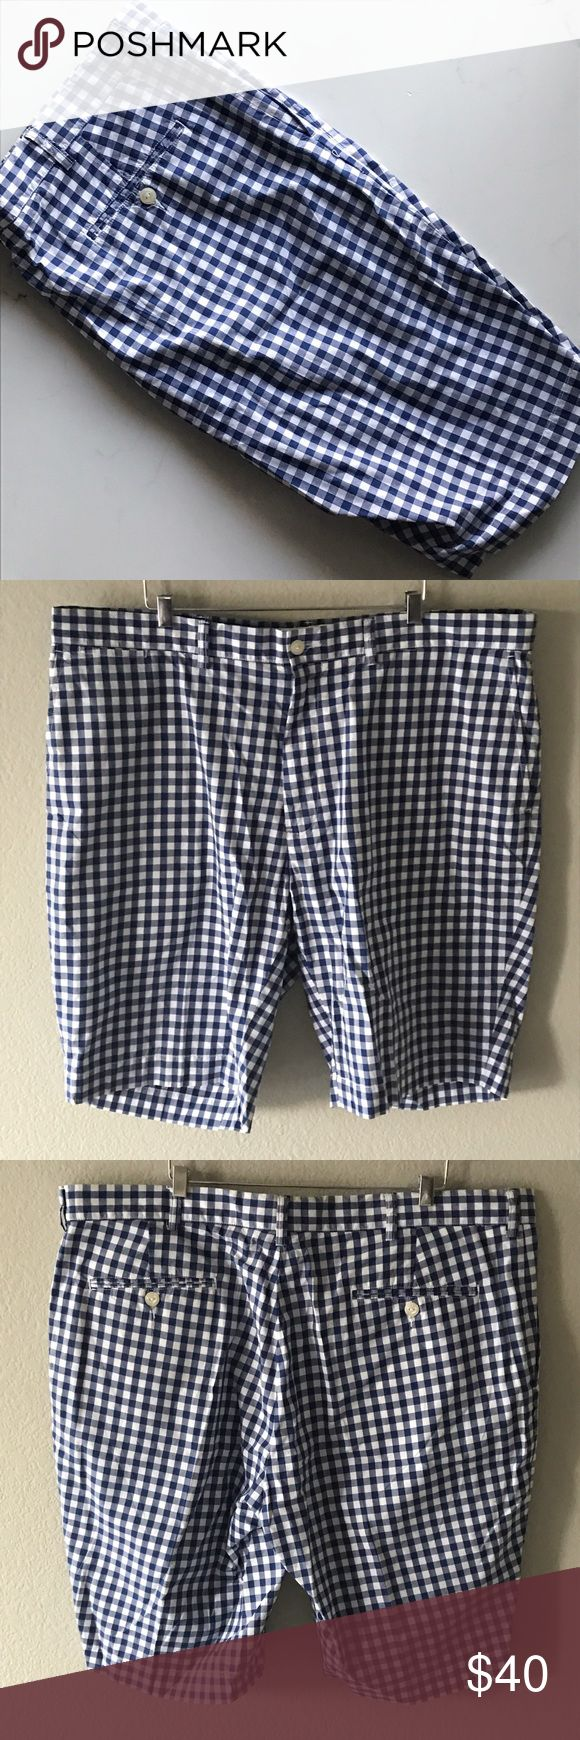 {HP🎉}Ralph Lauren Shorts Polo by Ralph Lauren checkered shorts! Excellent condition, perfect for spring and summer, and definitely a statement piece. Ralph Lauren Shorts